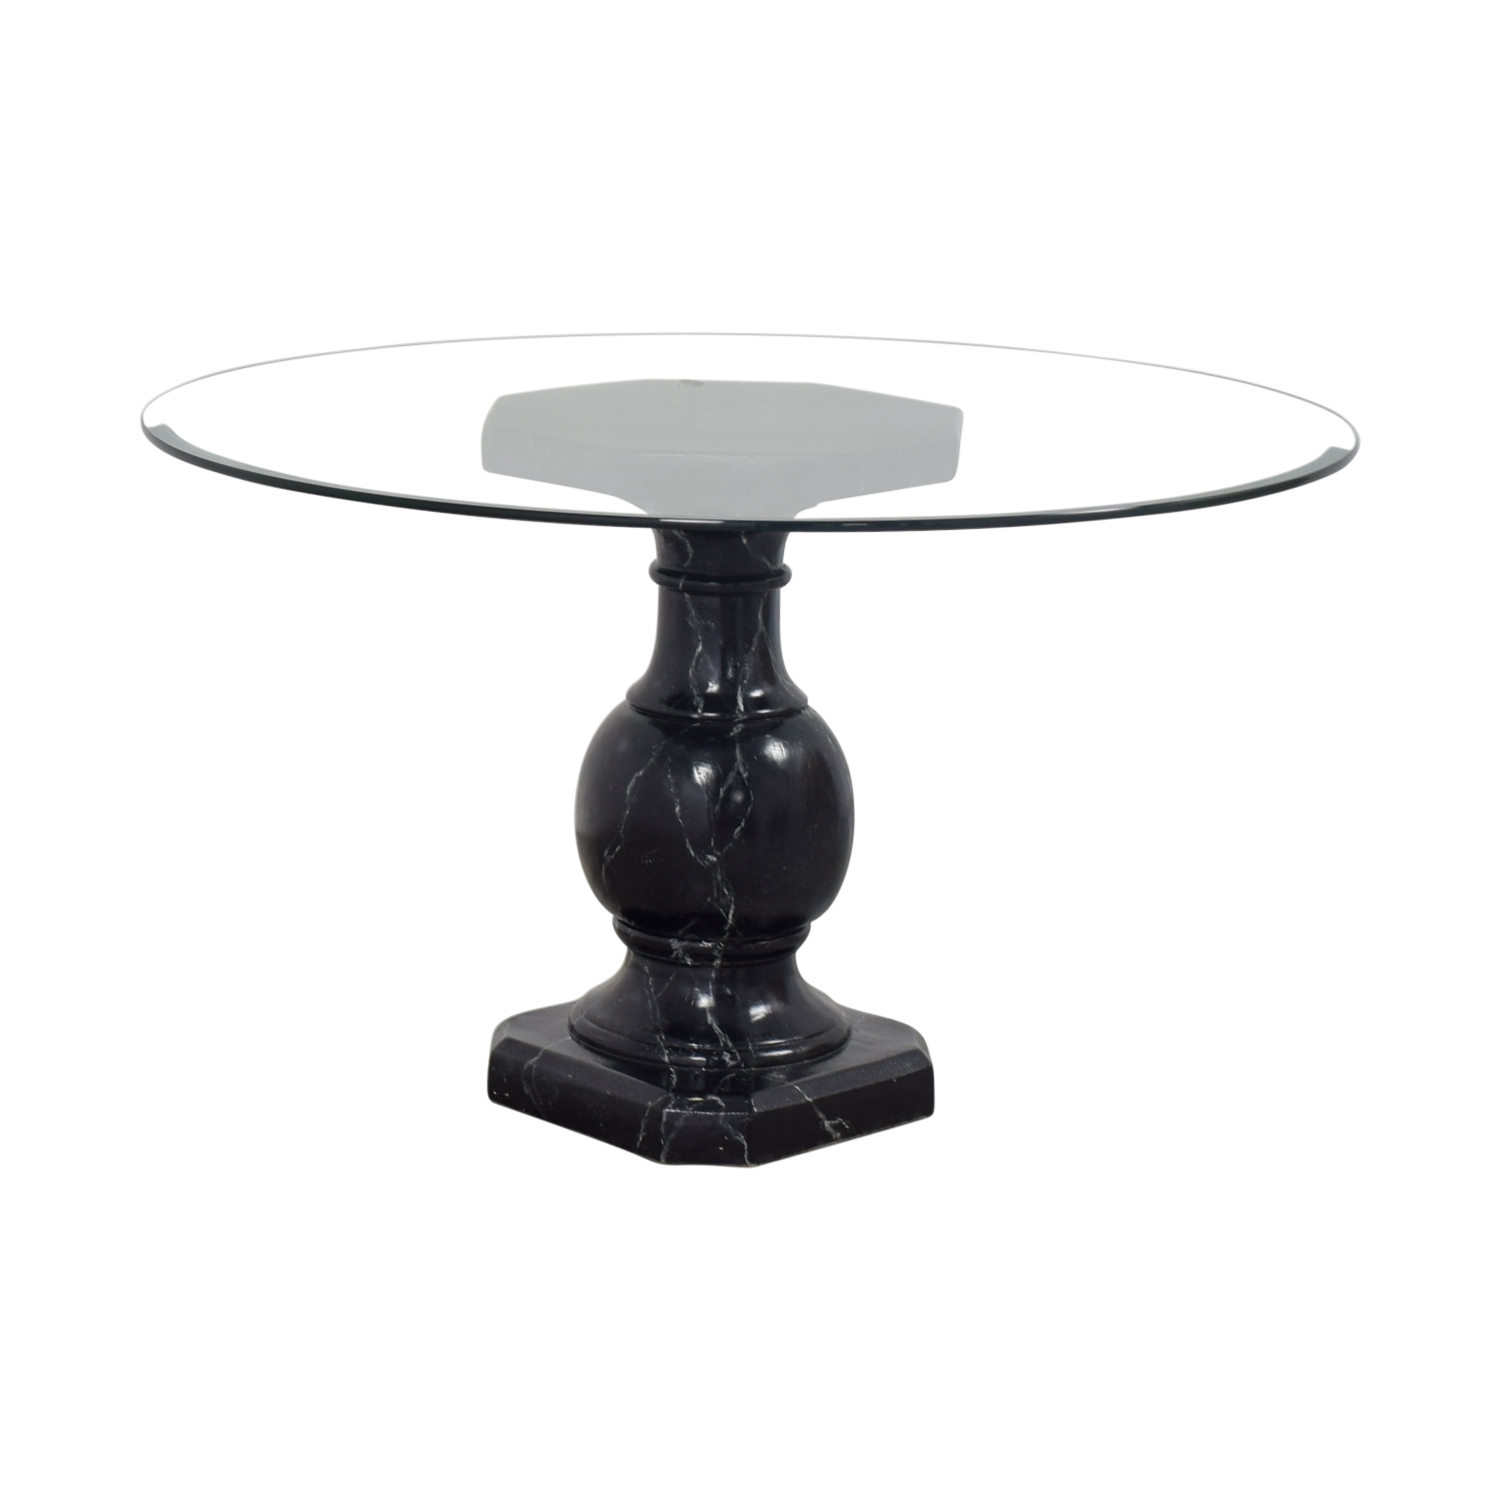 71 Off Ballard Designs Dining Table With Glass Top Tables